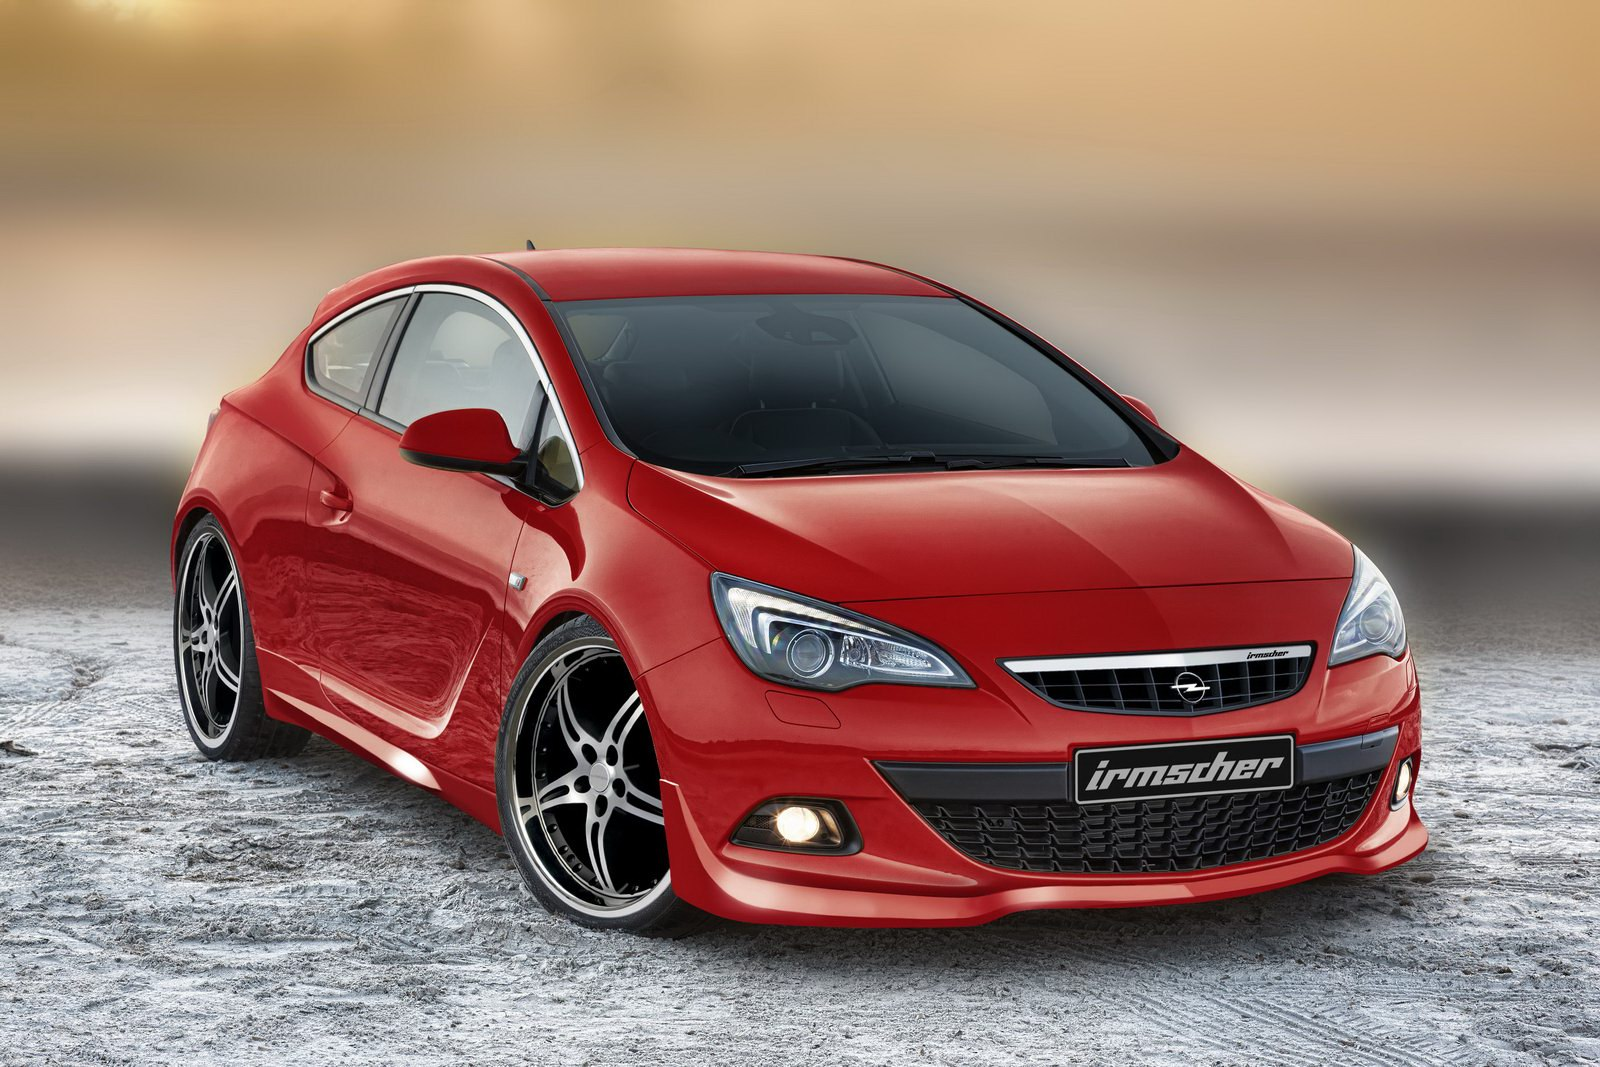 2012 opel astra gtc by irmscher sports top speed. Black Bedroom Furniture Sets. Home Design Ideas